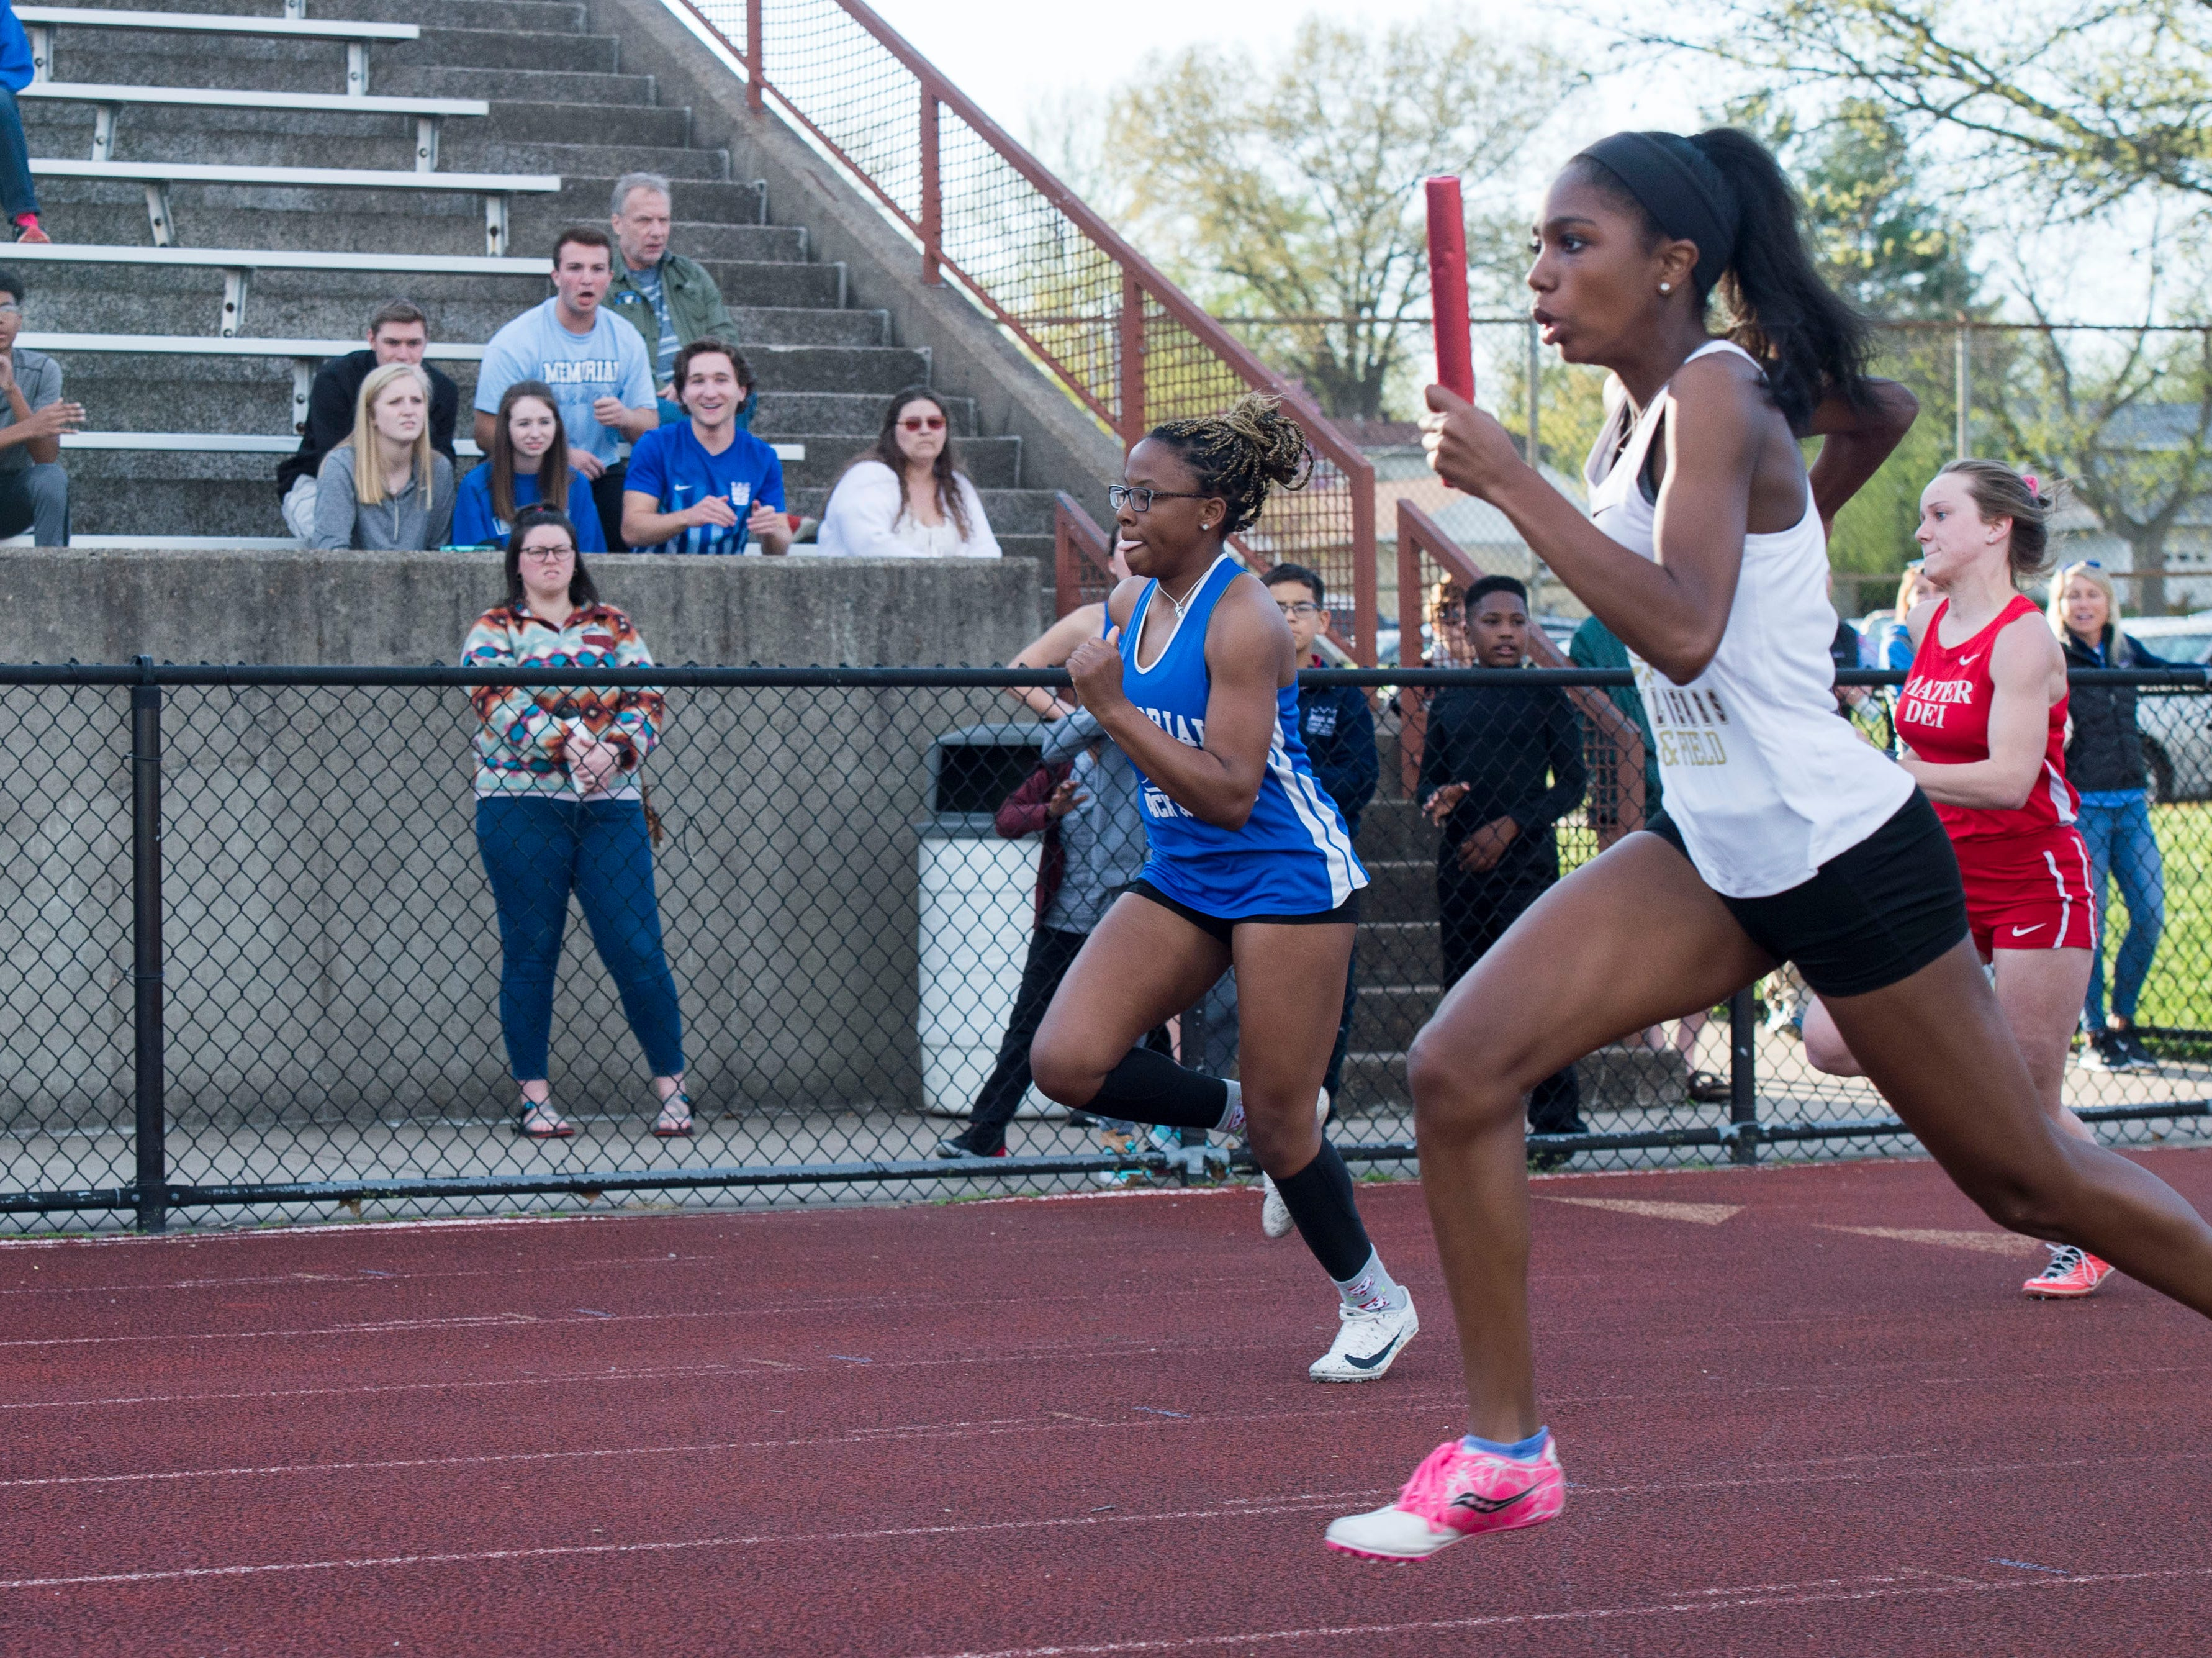 Central's Jayria Stinson gains speed in the last stretch of the girls 400m relay during the 2019 City Track and Field meet at Central High School Friday, April 12, 2019.